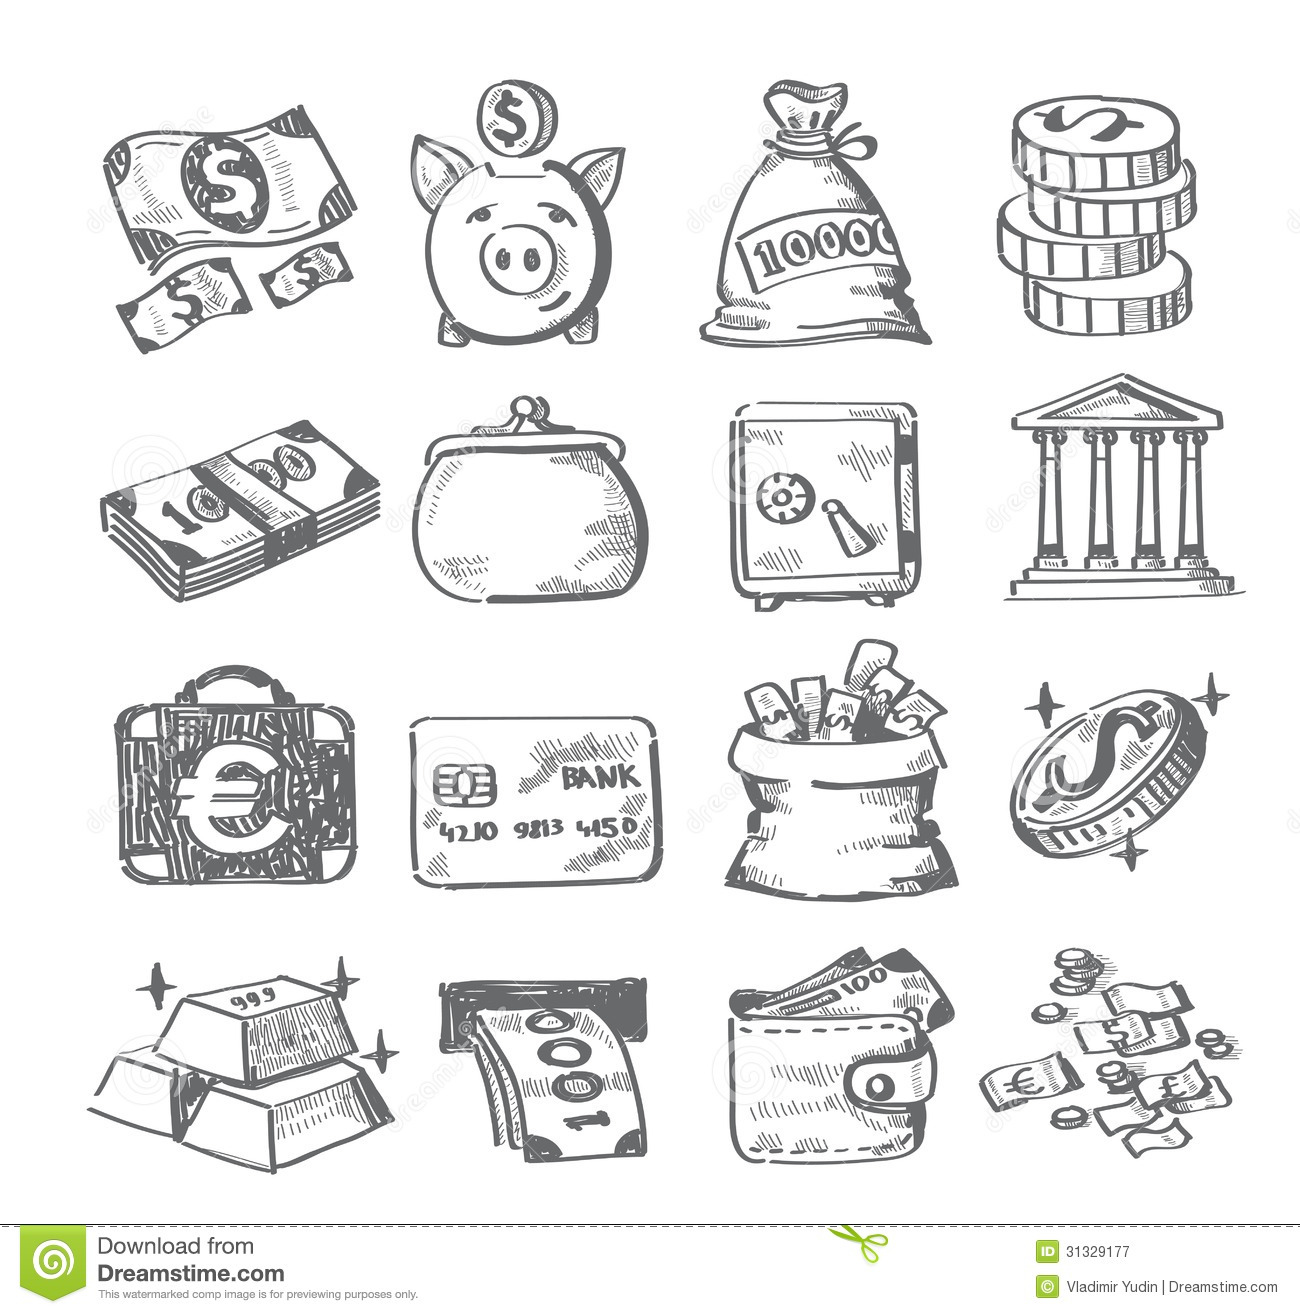 Picture Of A Bag Of Money further Big Bag in addition Small Umbrella Coloring Page 1d5771 additionally Throw away trash clip art likewise Royalty Free Stock Photography Hand Draw Money Vector Icon Set White Image31329177. on money bag cartoon